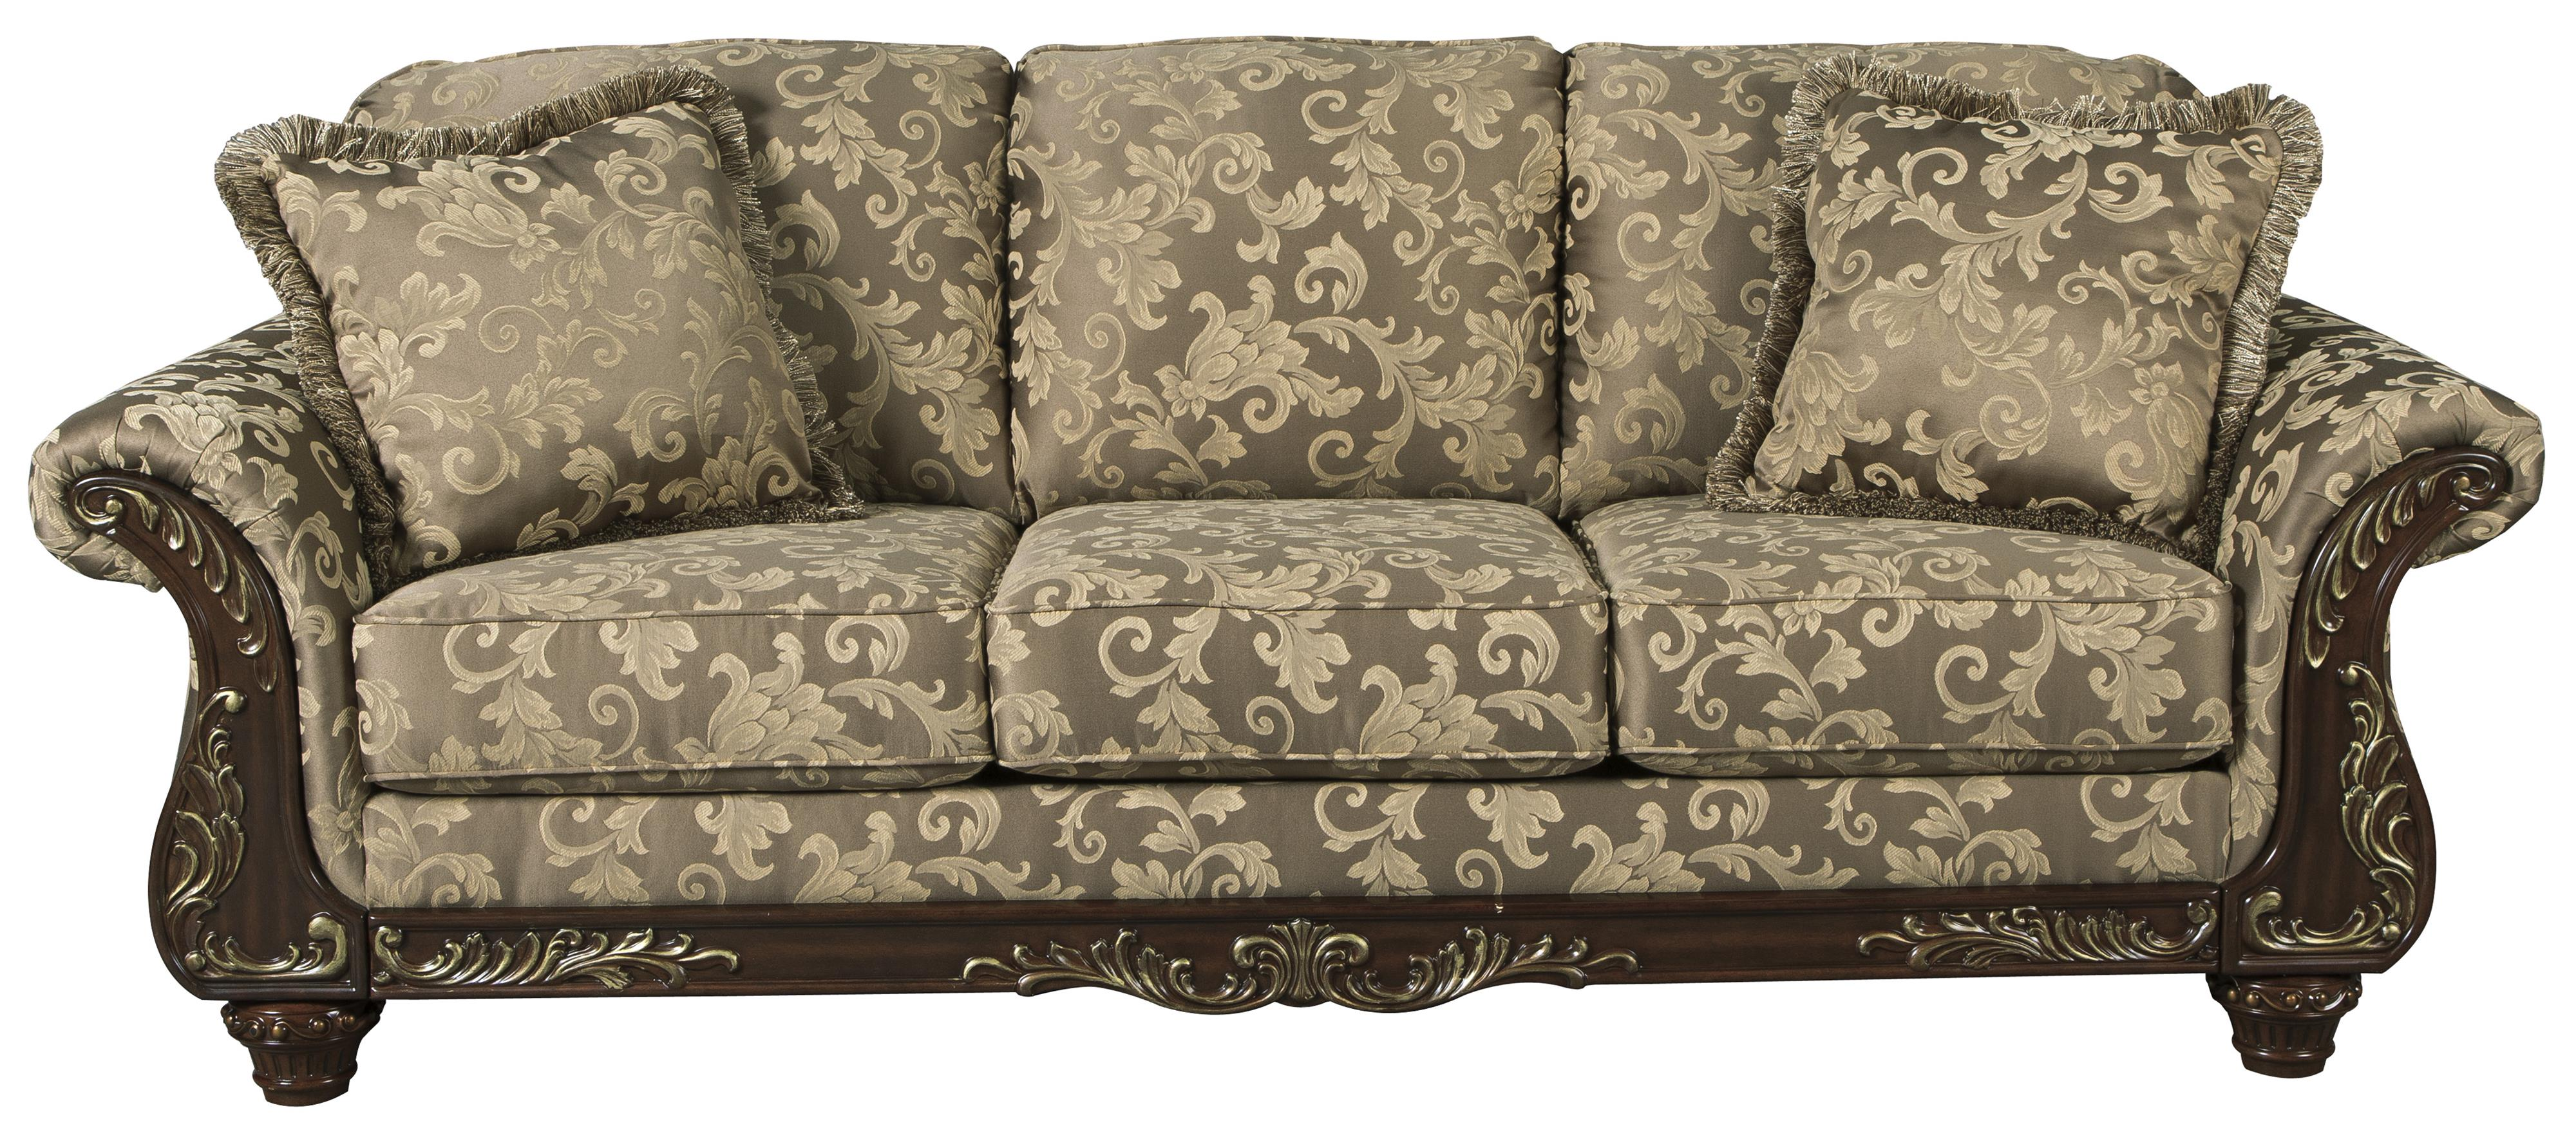 Signature Design by Ashley Irwindale Sofa - Item Number: 8840438